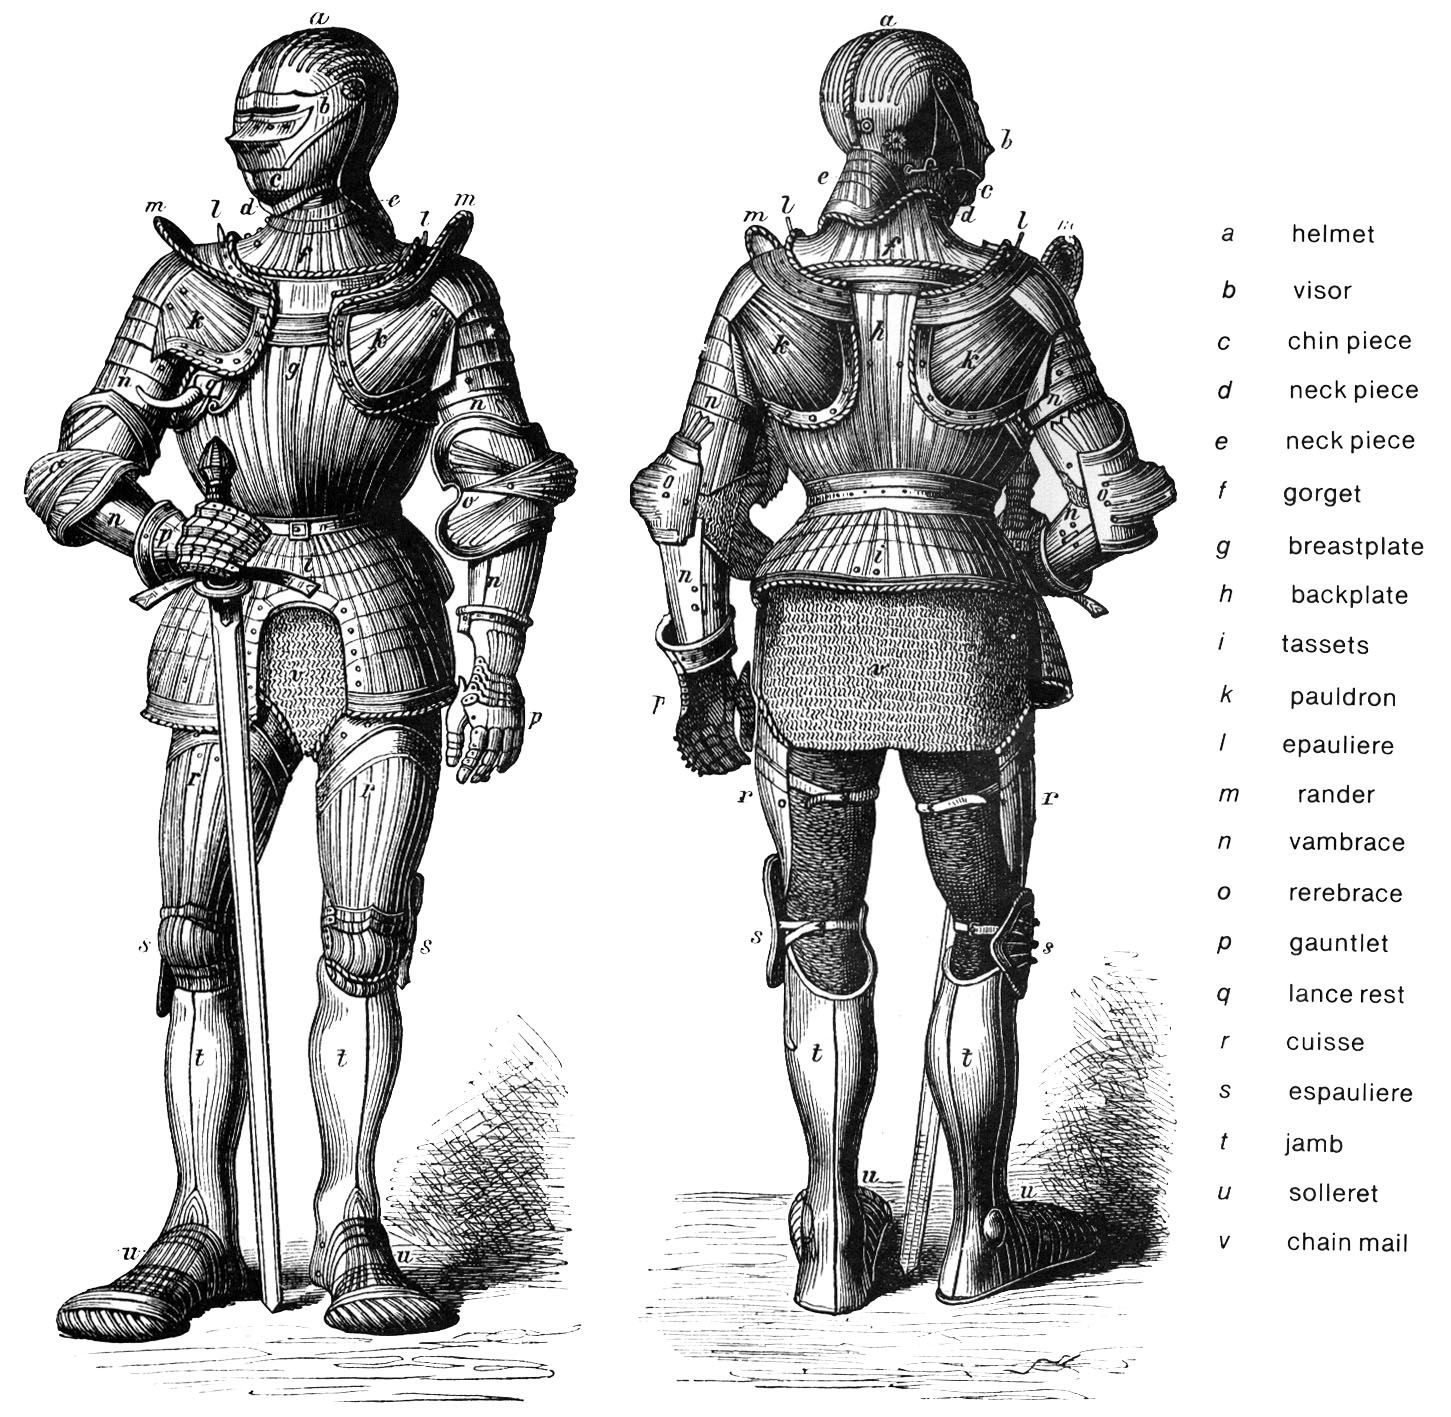 http://infothread.org/Weapons%20and%20Military/Armor-Uniform ...